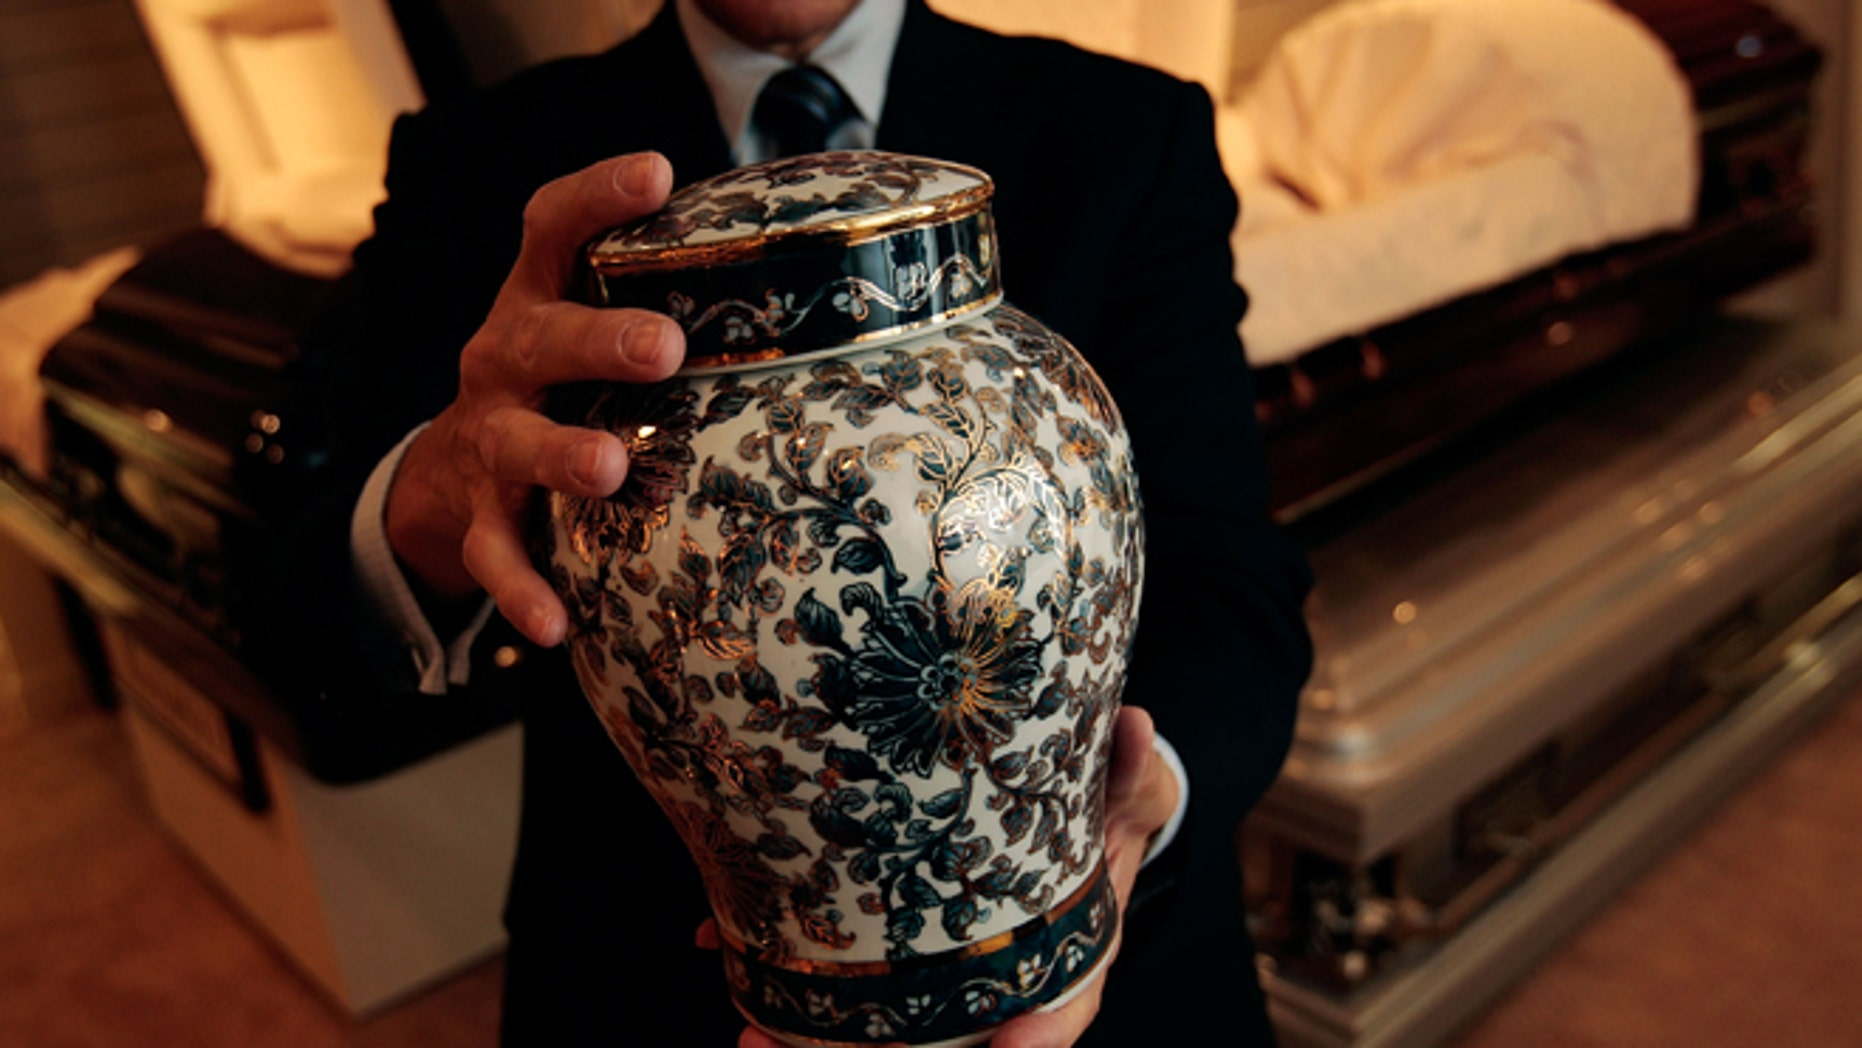 NEW YORK - NOVEMBER 20:  Funeral director Peter DeLuca, owner of Greenwich Village Funeral Home, holds a cremation urn in the showroom of his funeral parlor on November 20, 2008 in New York City. New technologies, such as flat screen televisions for video memorials, ornate and even sports-team themed cremation urns are also slowly being introduced at funeral homes. Despite the currently languishing economy, the funeral home world is readying for an upswing nationally, as the recession-resistant business prepares for an expected rise in death rates as baby boomers start to reach old age in the coming decade.  (Photo by Chris Hondros/Getty Images)